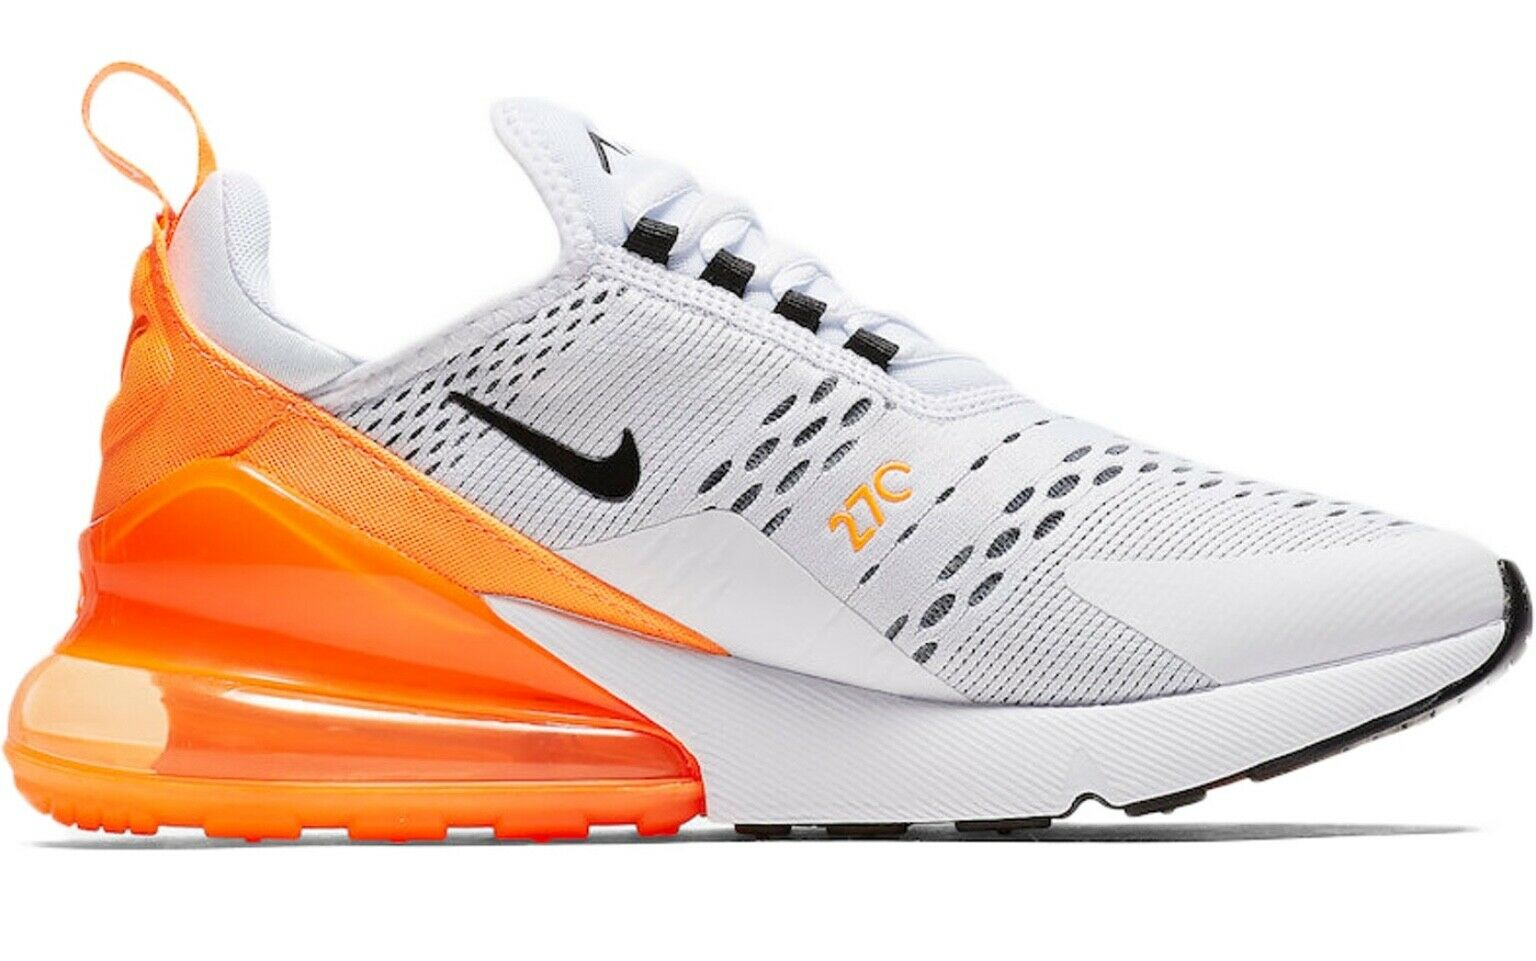 Donne _sNike Air Max  270 AH6789 -104 Trainer UK5  EU38.5  US7.5  classico senza tempo